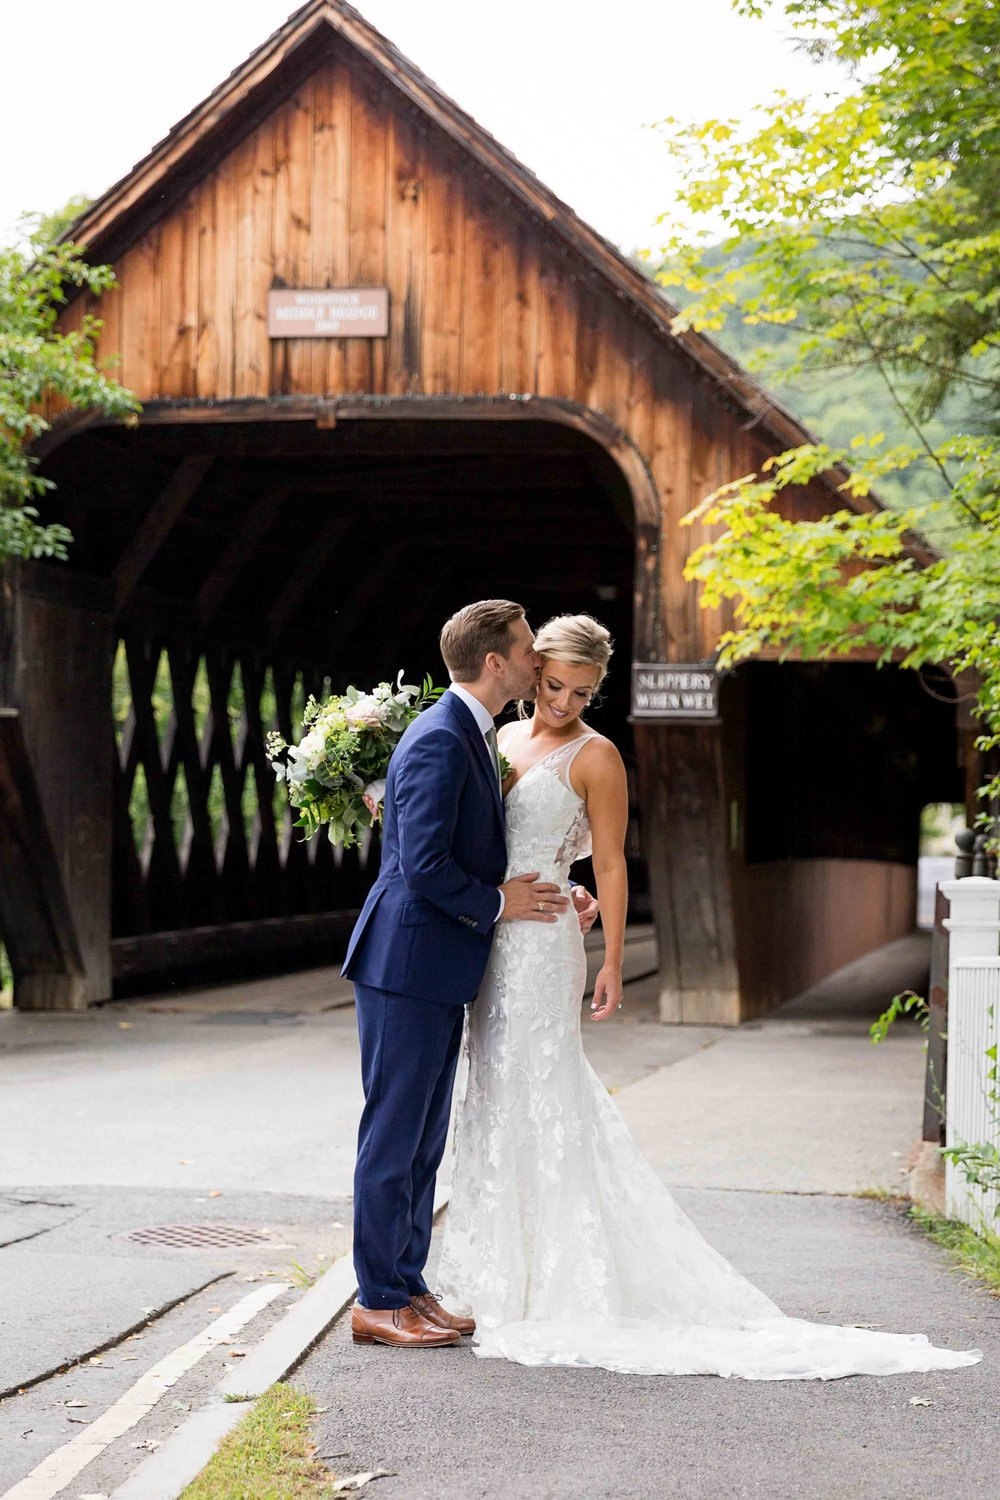 Covered Bridge Wedding Portrait in Woodstock VT from The Woodstock Inn and Resort